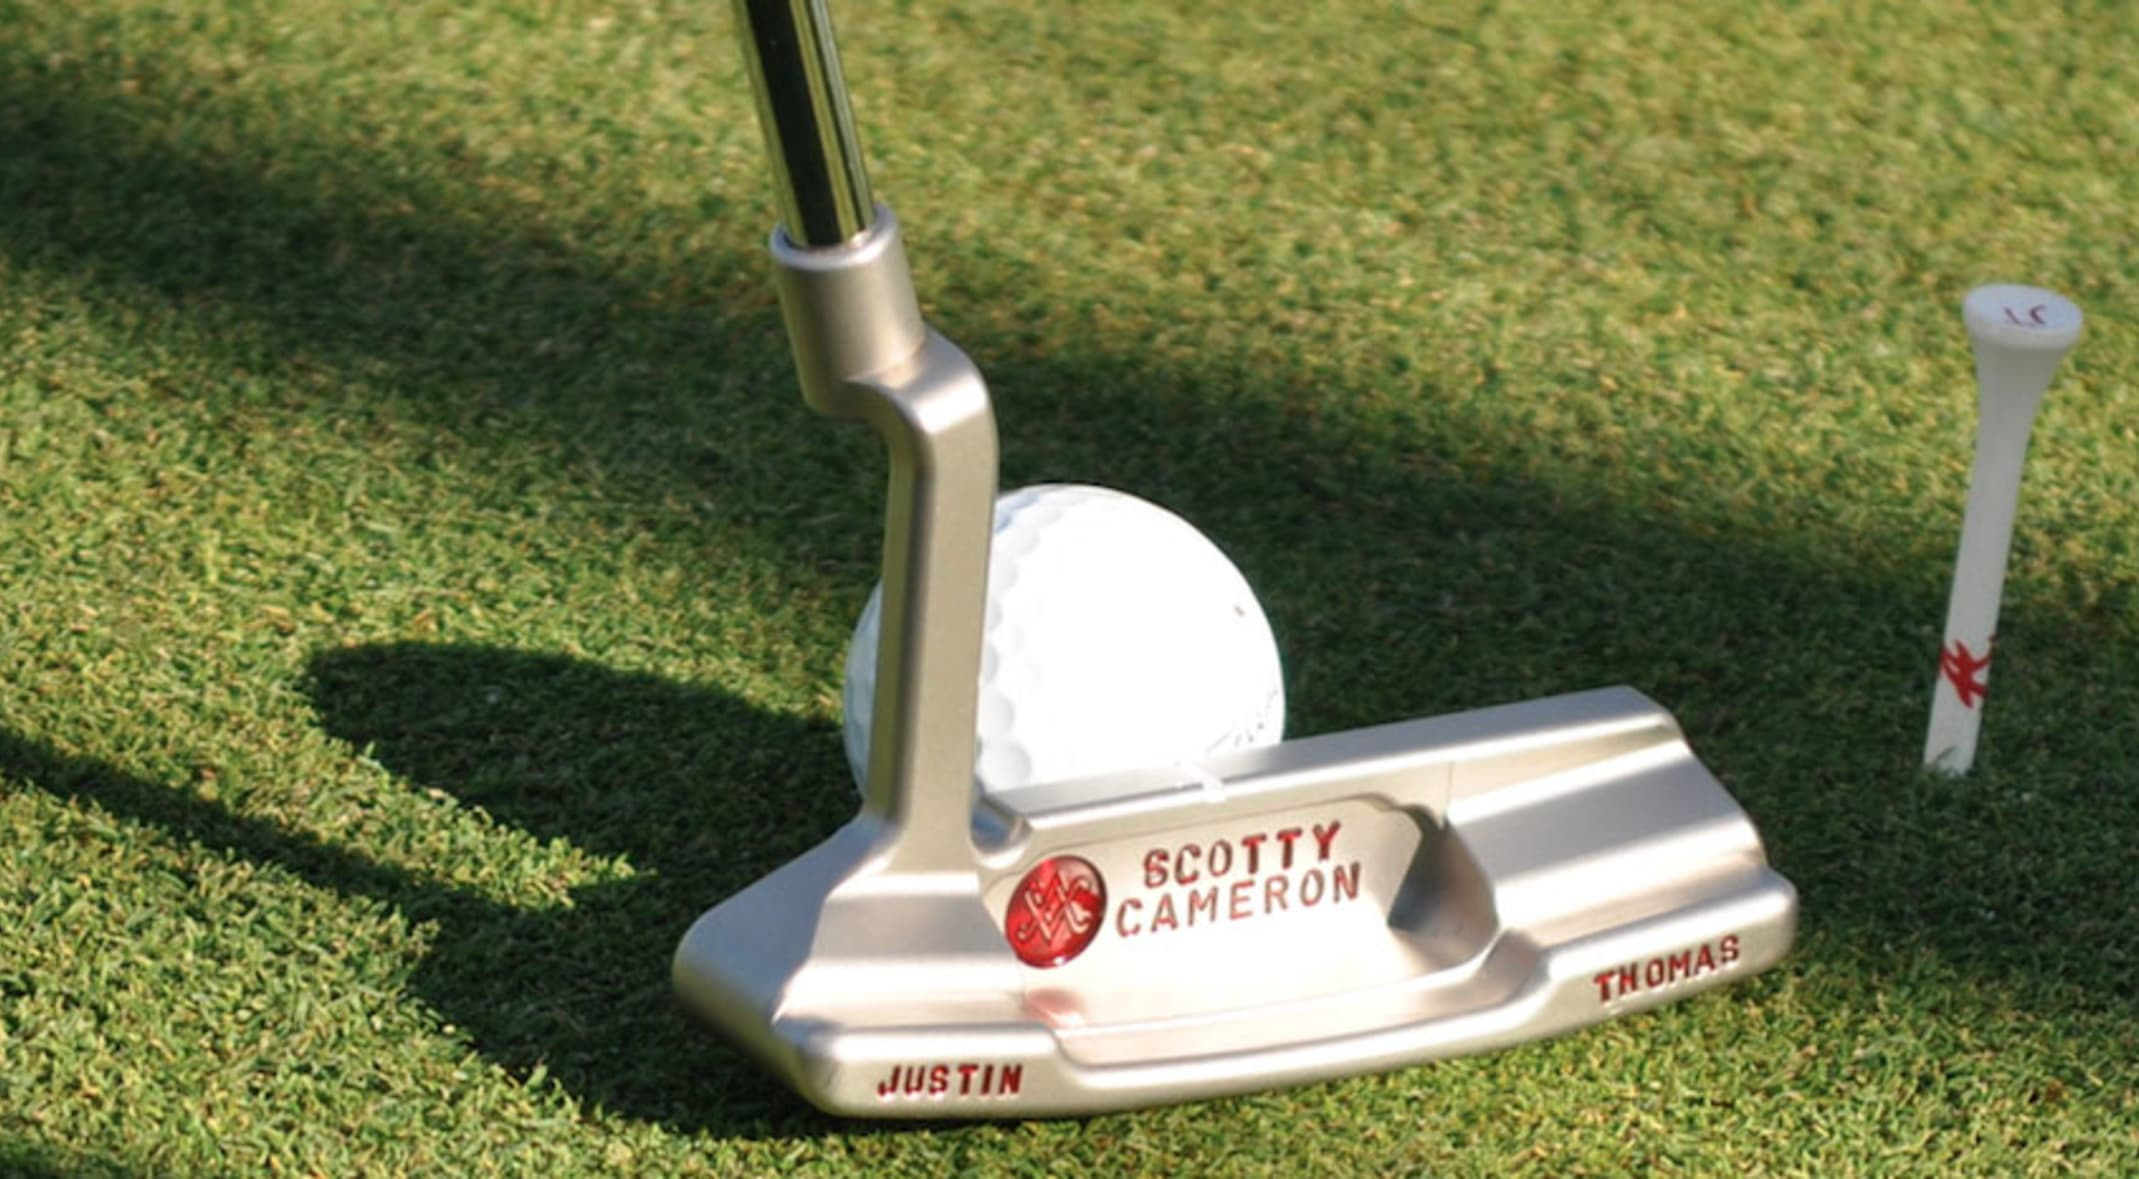 Favorite Club Justin Thomas Putter